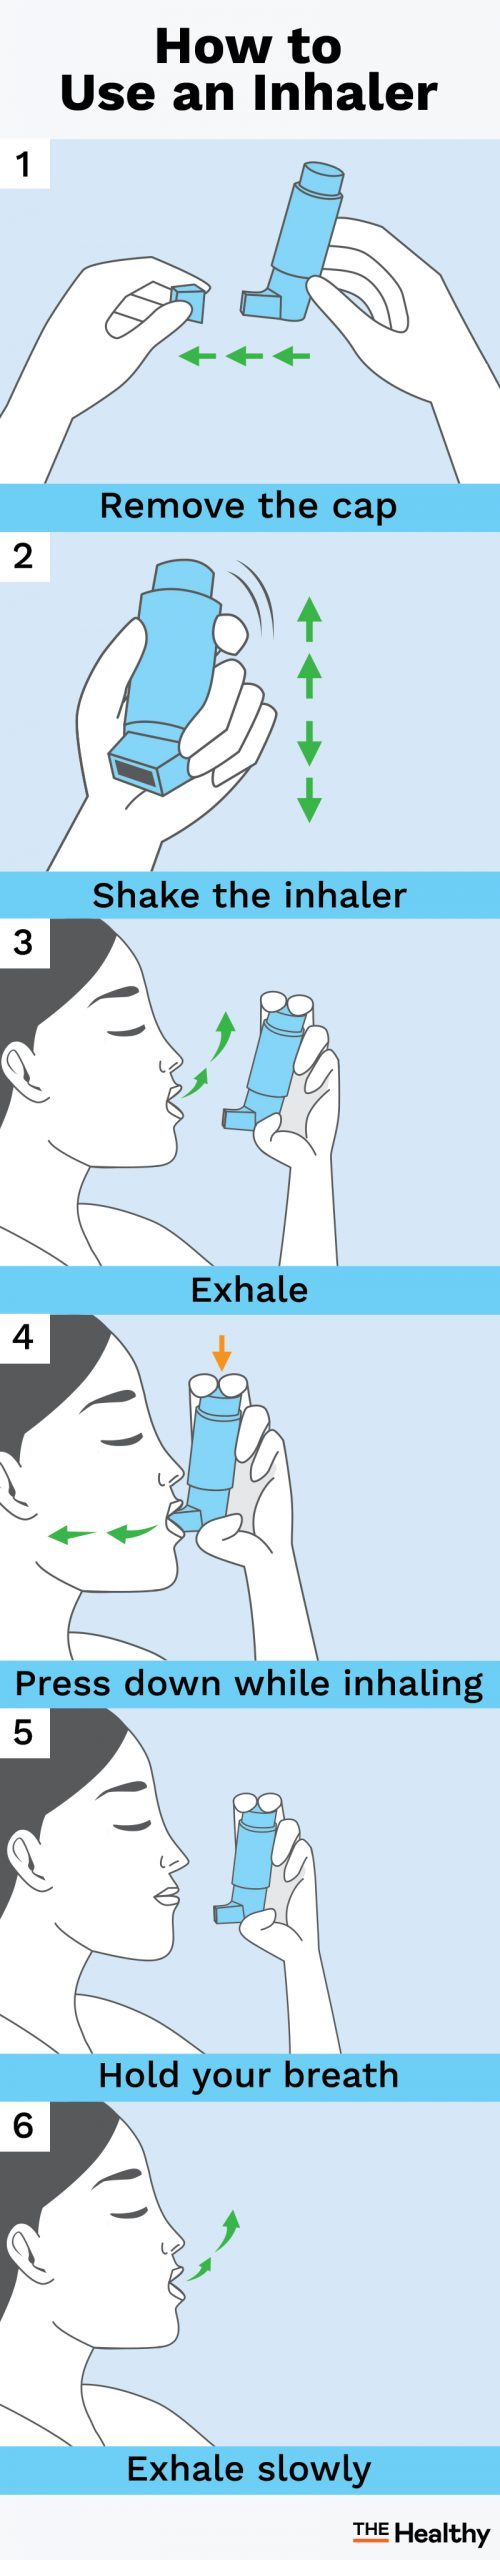 How To Use An Inhaler Infographic